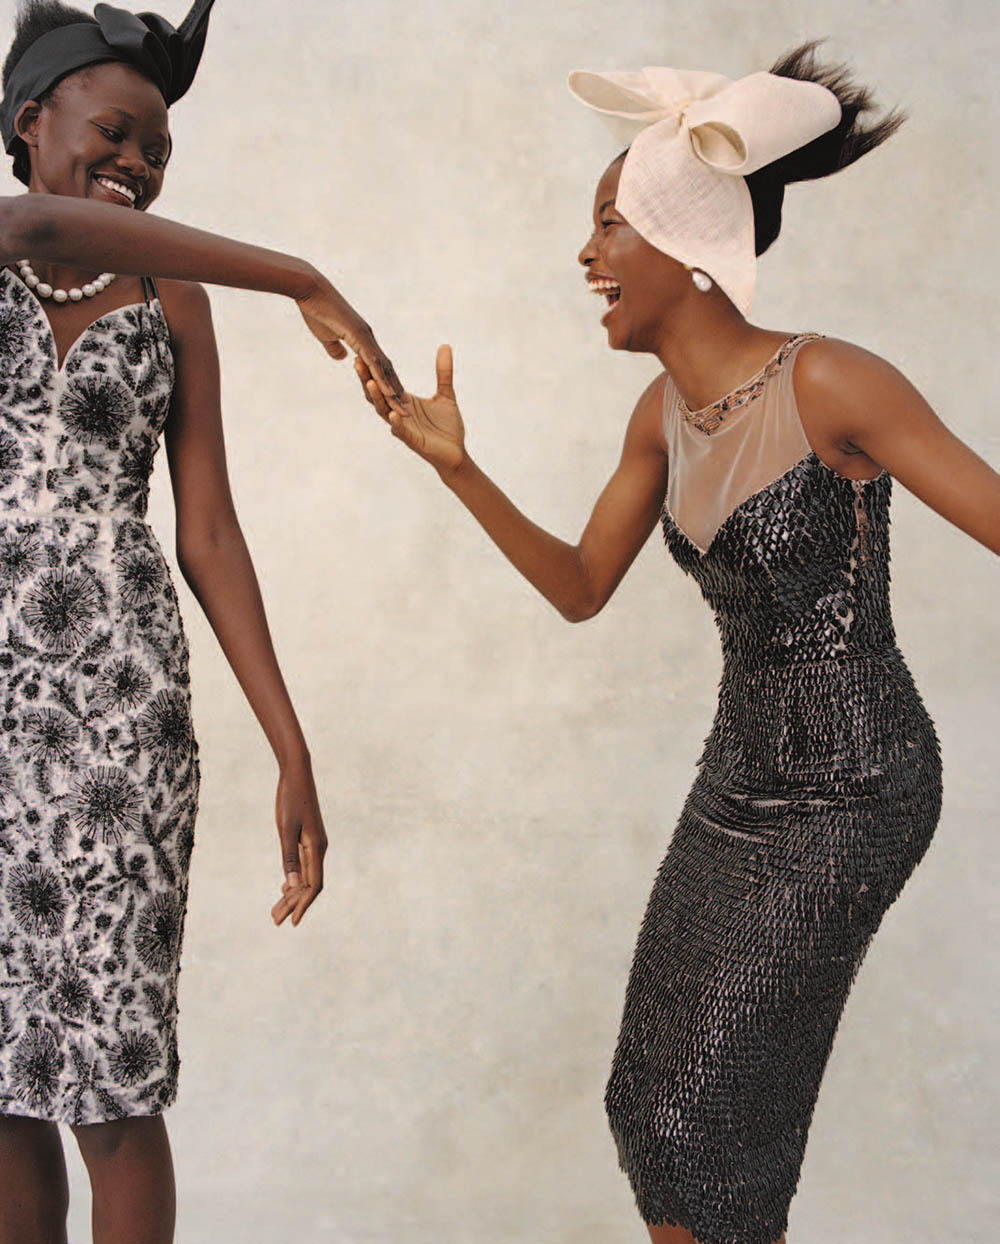 ''Kith & Kin'' by Nadine Ijewere for WSJ. Magazine September 2020